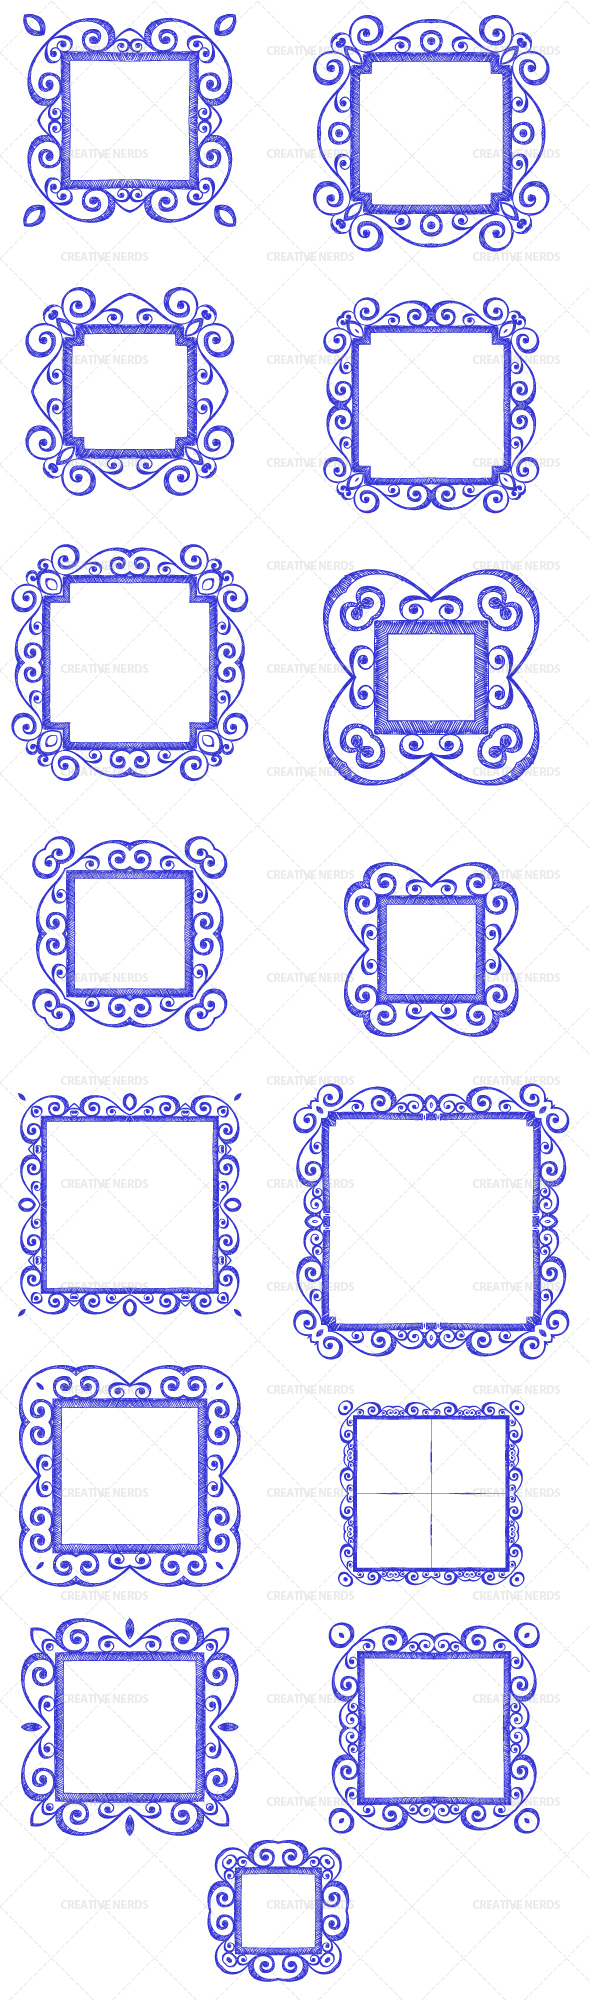 watermarked swirly frames Premium members: Swirly hand sketched border frames